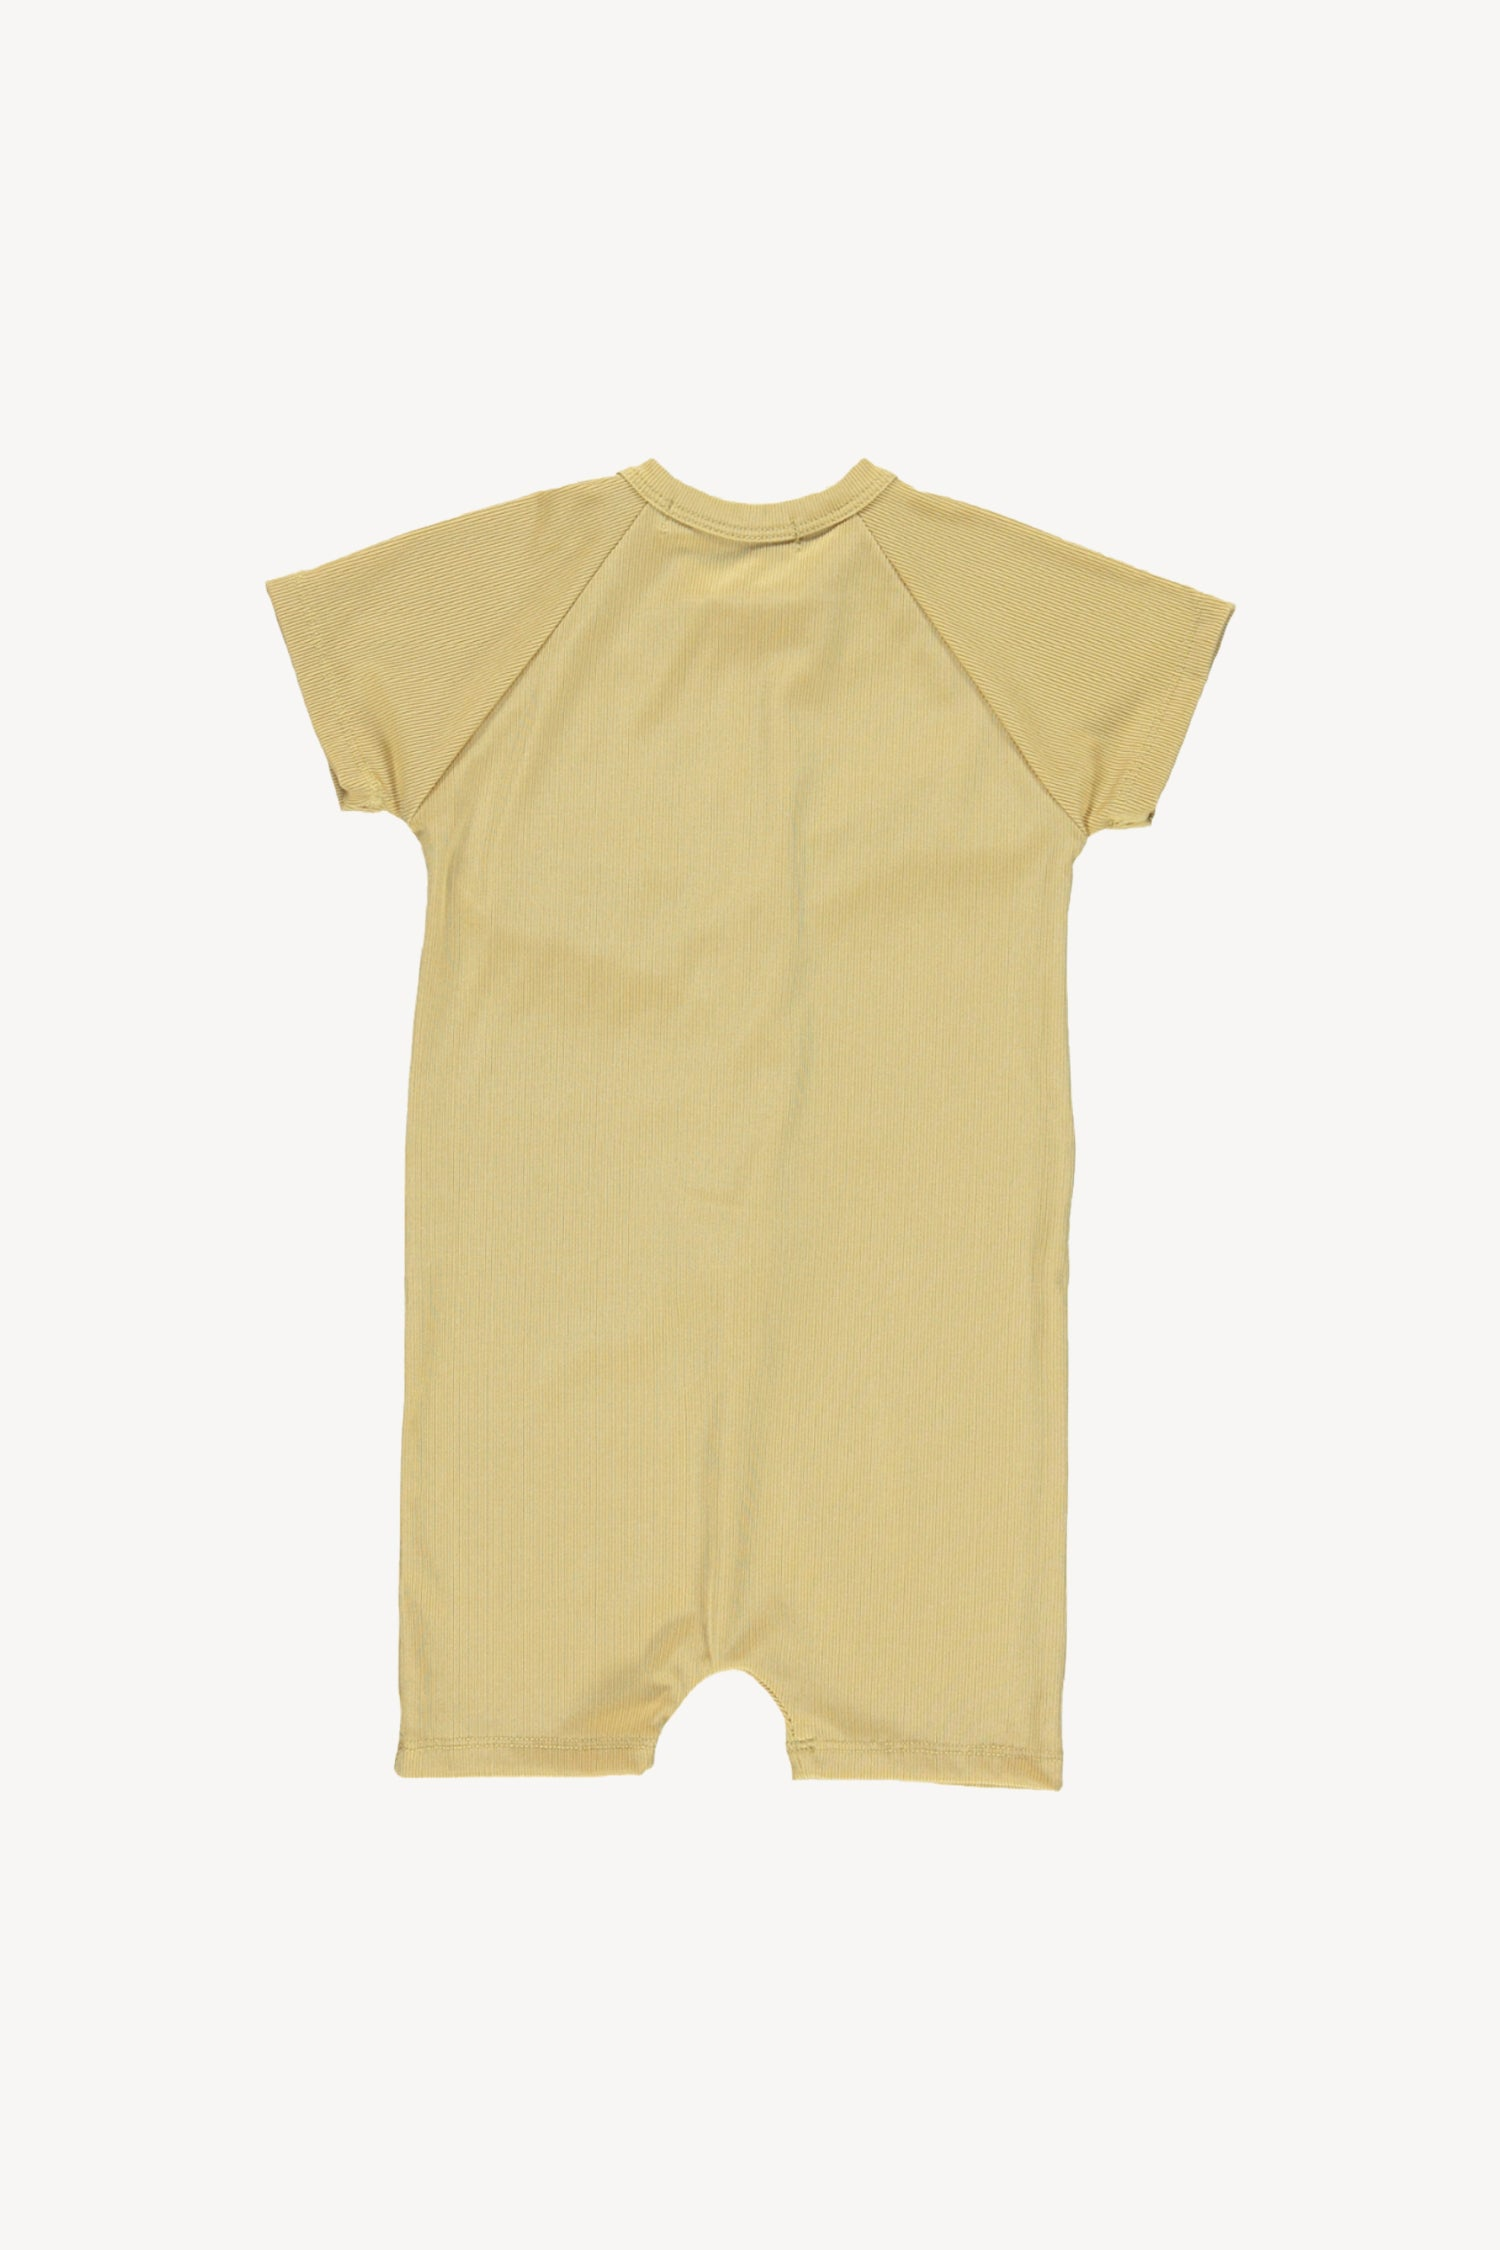 Fin and Vince - Ribbed One Piece Swimmer (Mustard)